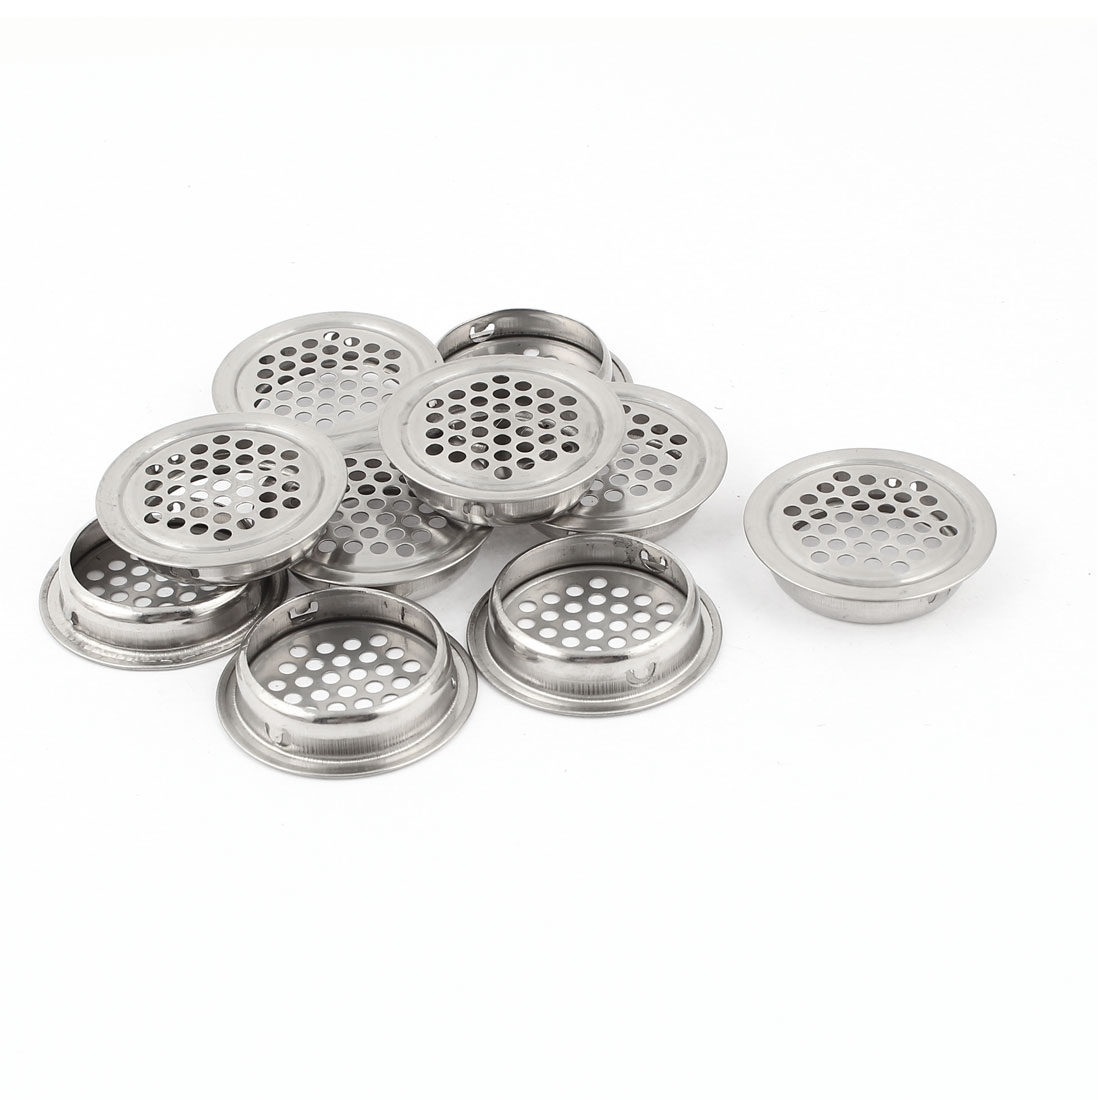 10 Pcs 35x42mm Silver Tone Stainless Steel Mesh Air Vent Louver Replacement